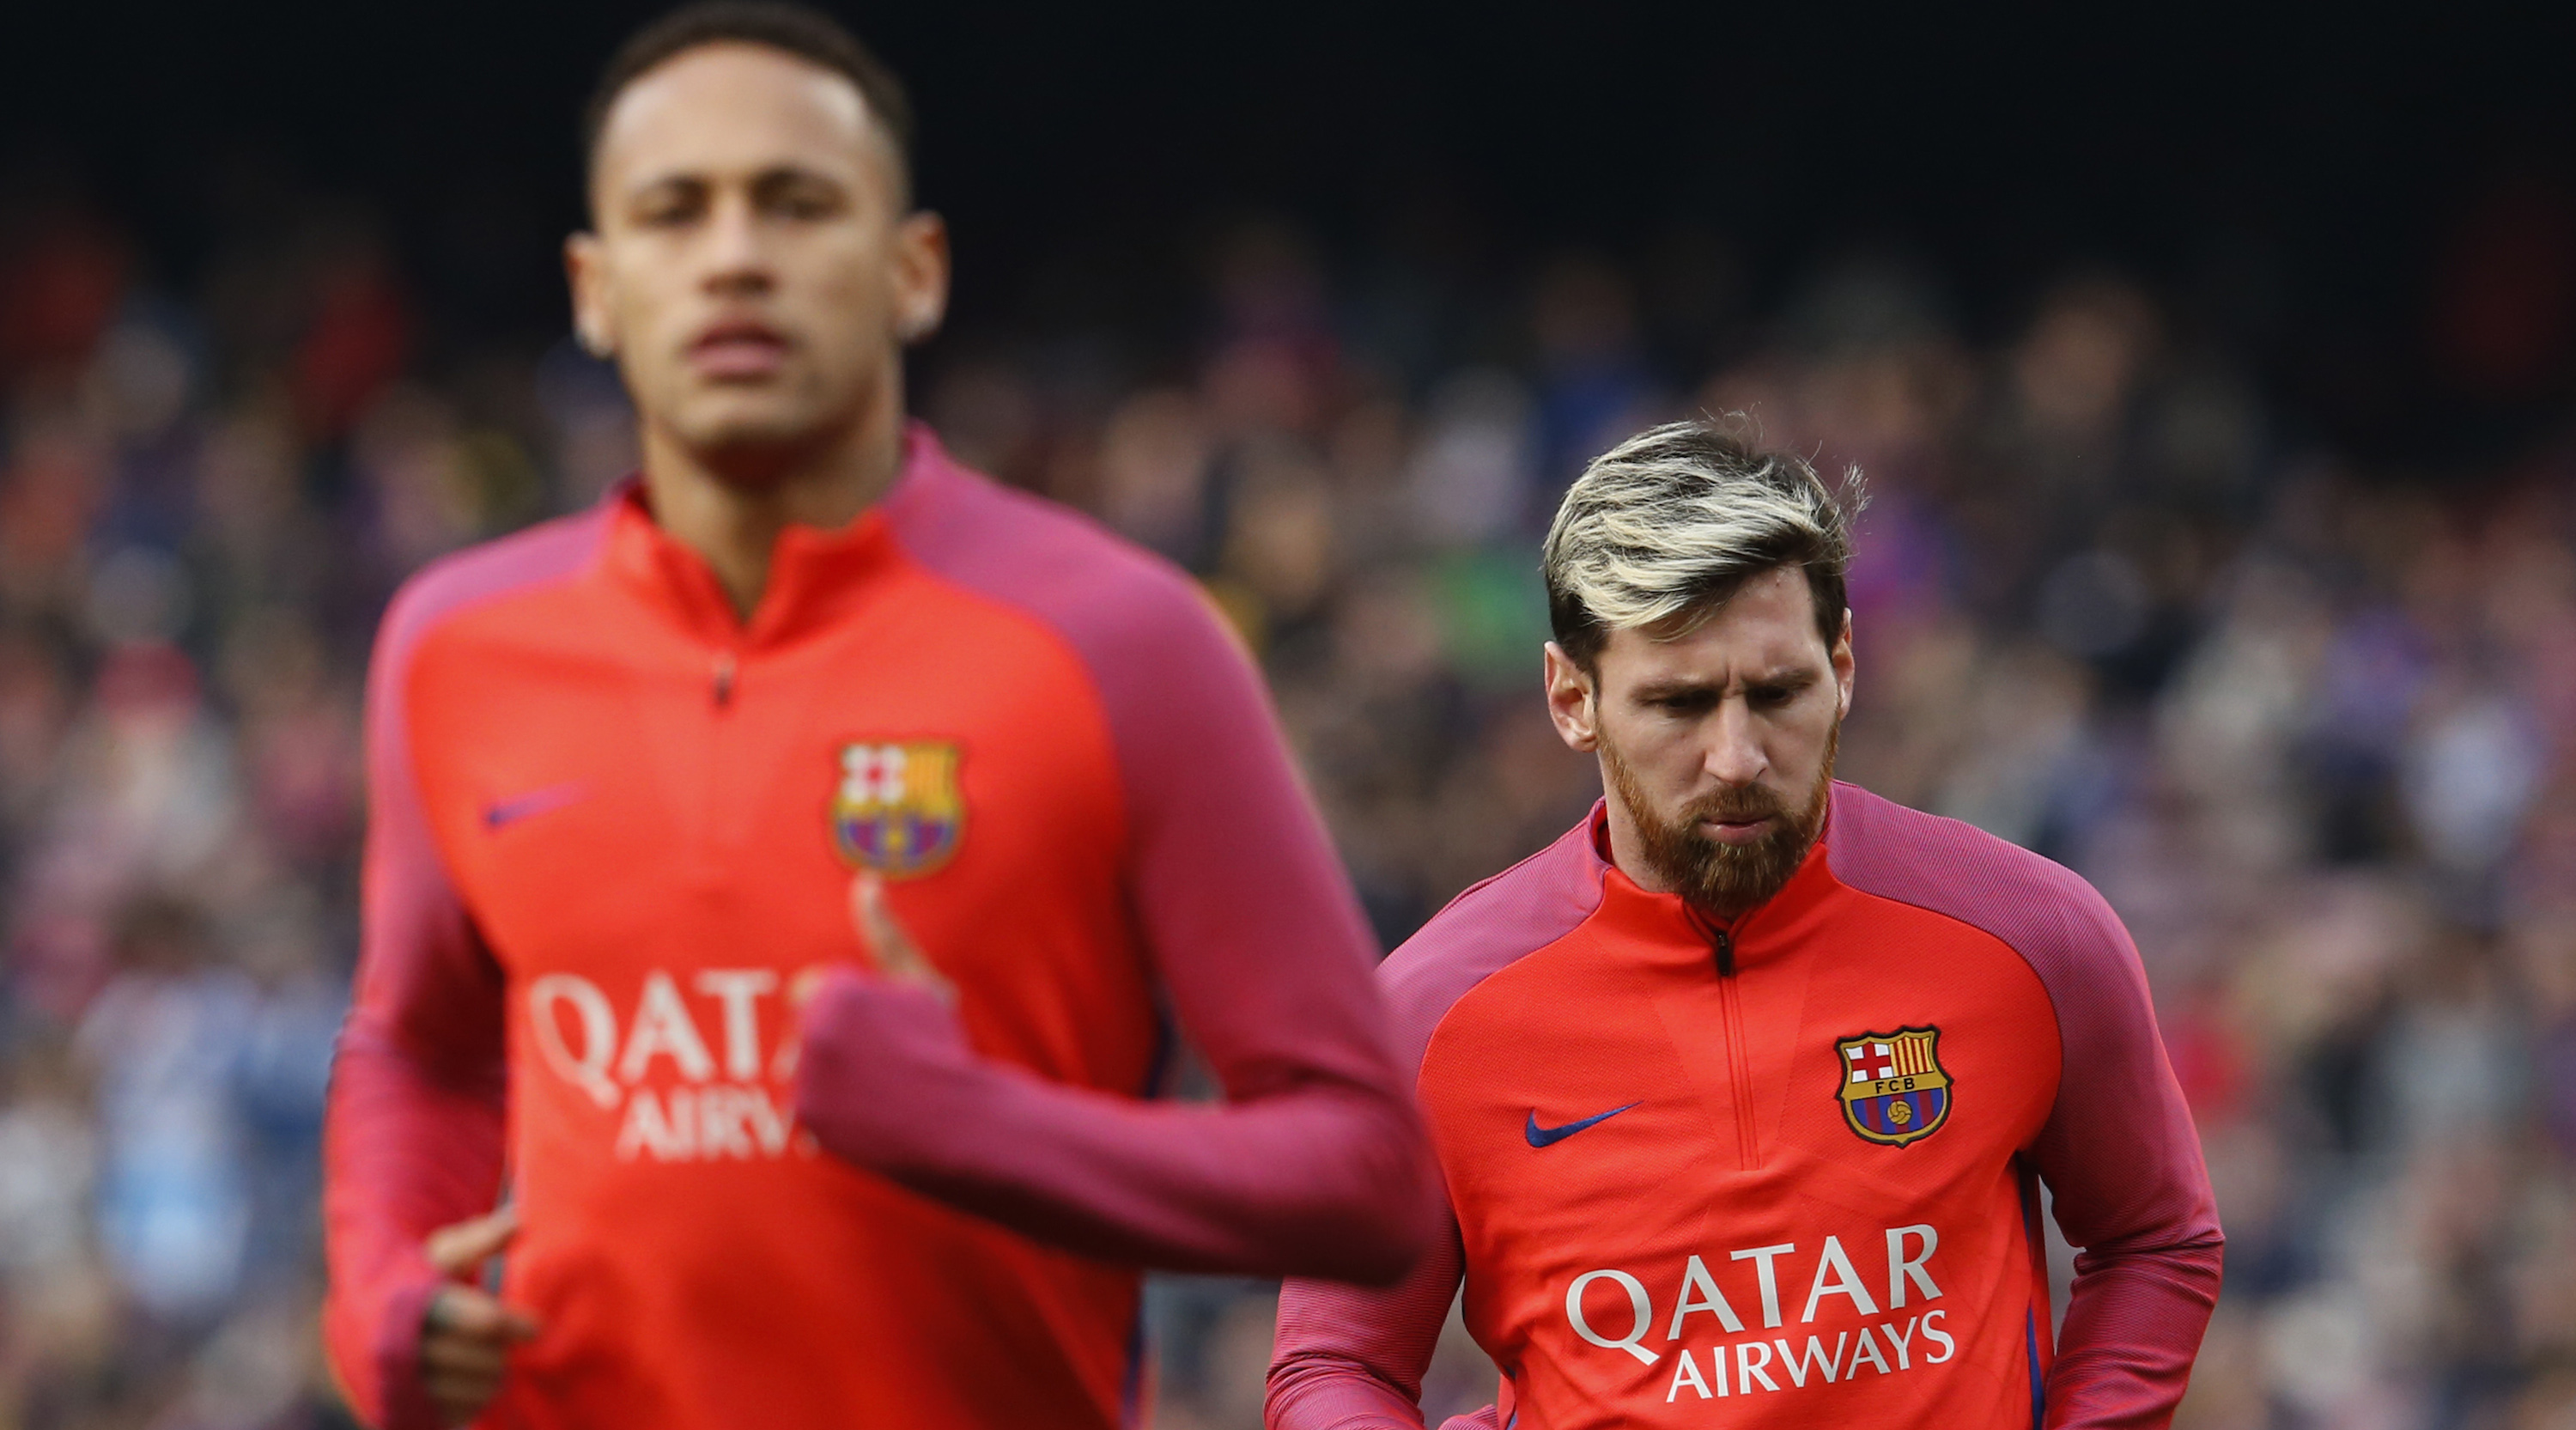 Barcelona's Argentinian forward Lionel Messi (R) and Barcelona's Brazilian forward Neymar warm up before the Spanish league football match FC Barcelona vs Real Madrid CF at the Camp Nou stadium in Barcelona on December 3, 2016. / AFP / PAU BARRENA (Photo credit should read PAU BARRENA/AFP/Getty Images)